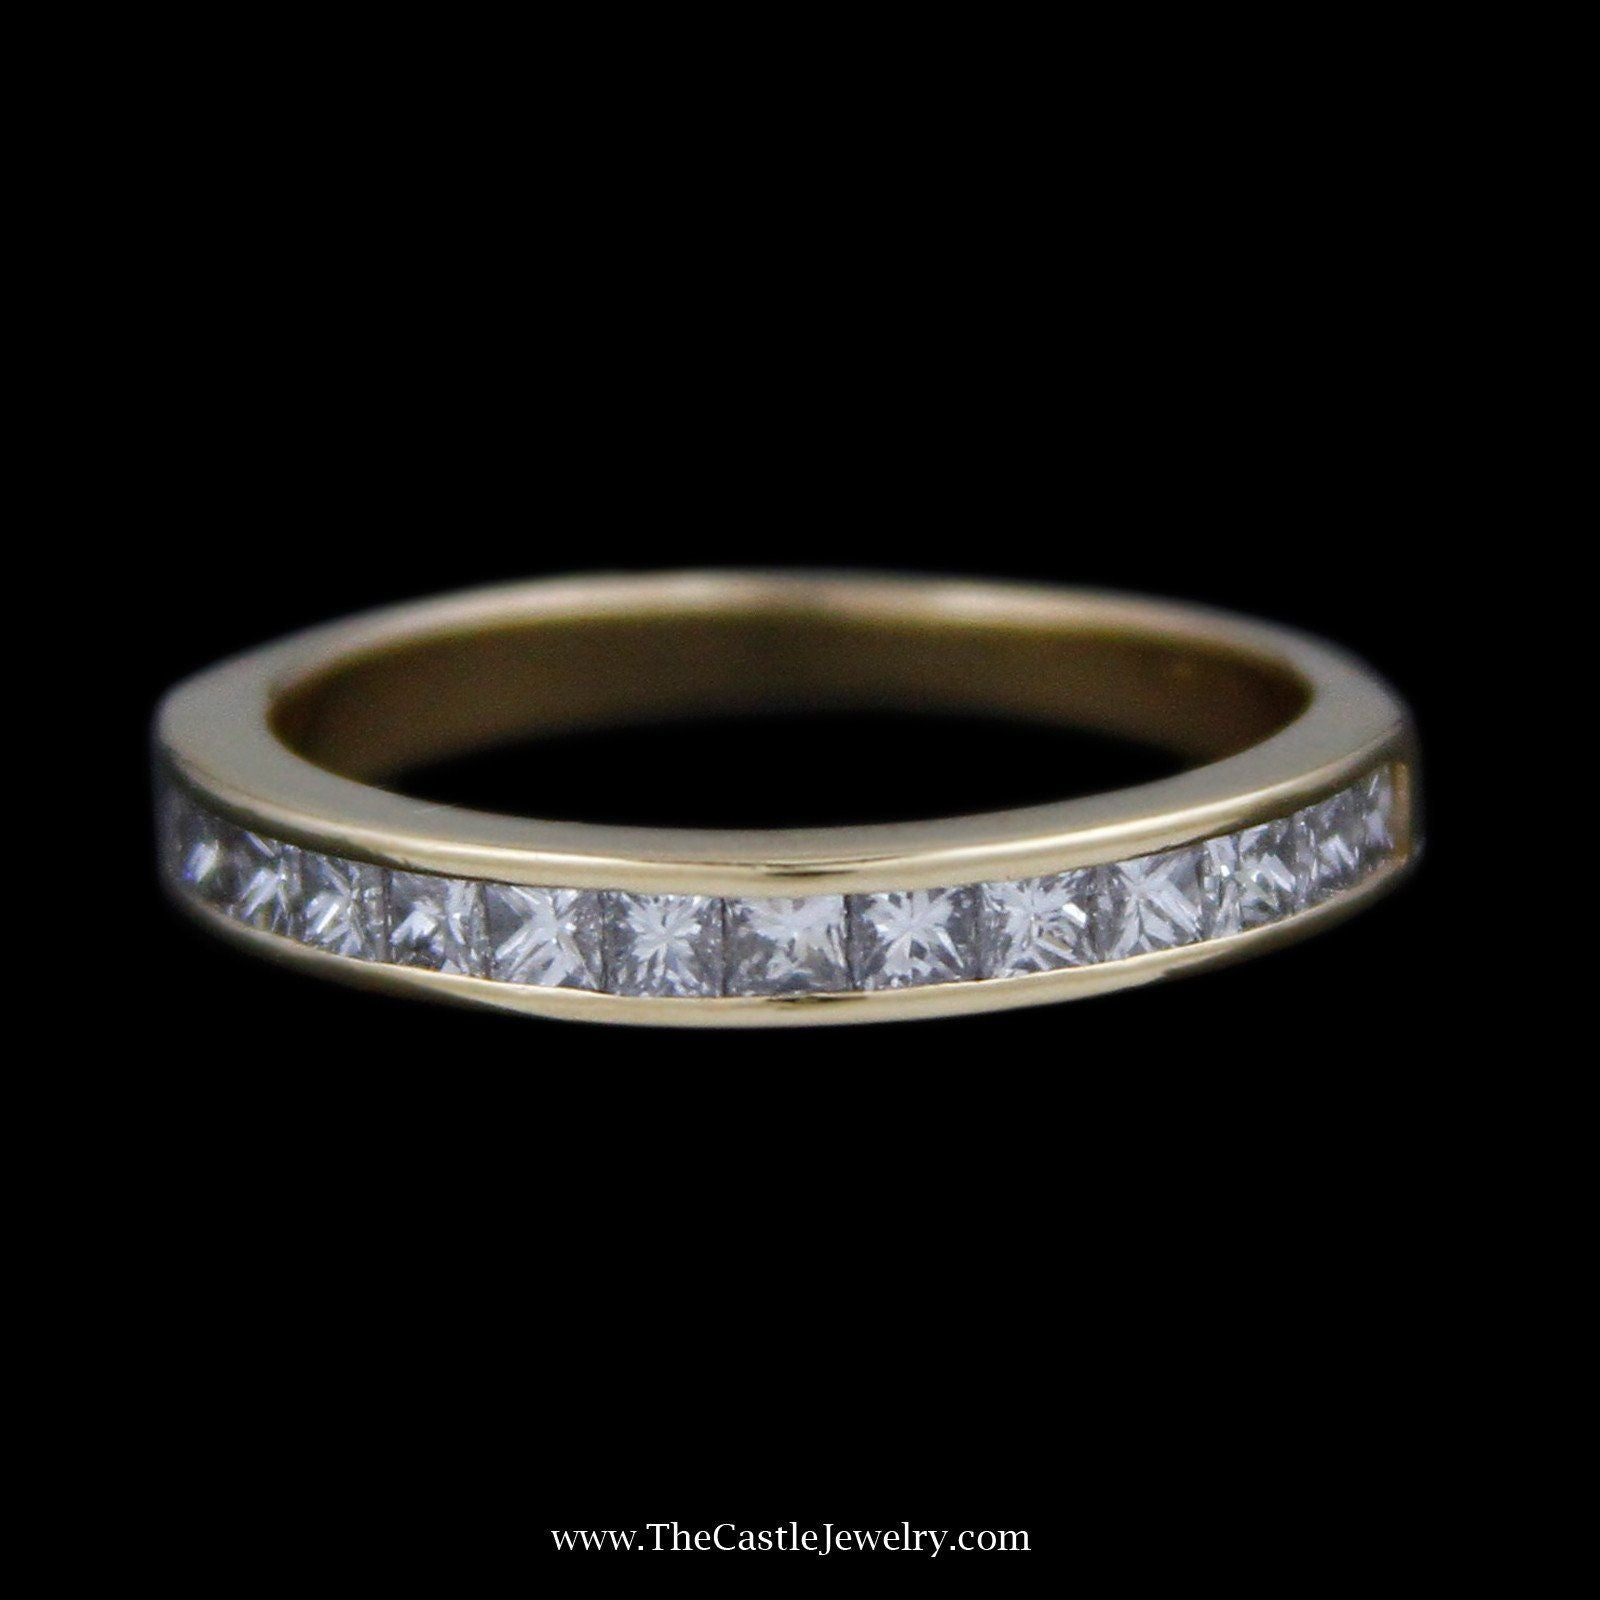 Tiffany & Co. Channel Set Princess Cut 1cttw Diamond Wedding Band Crafted in 18K Yellow Gold